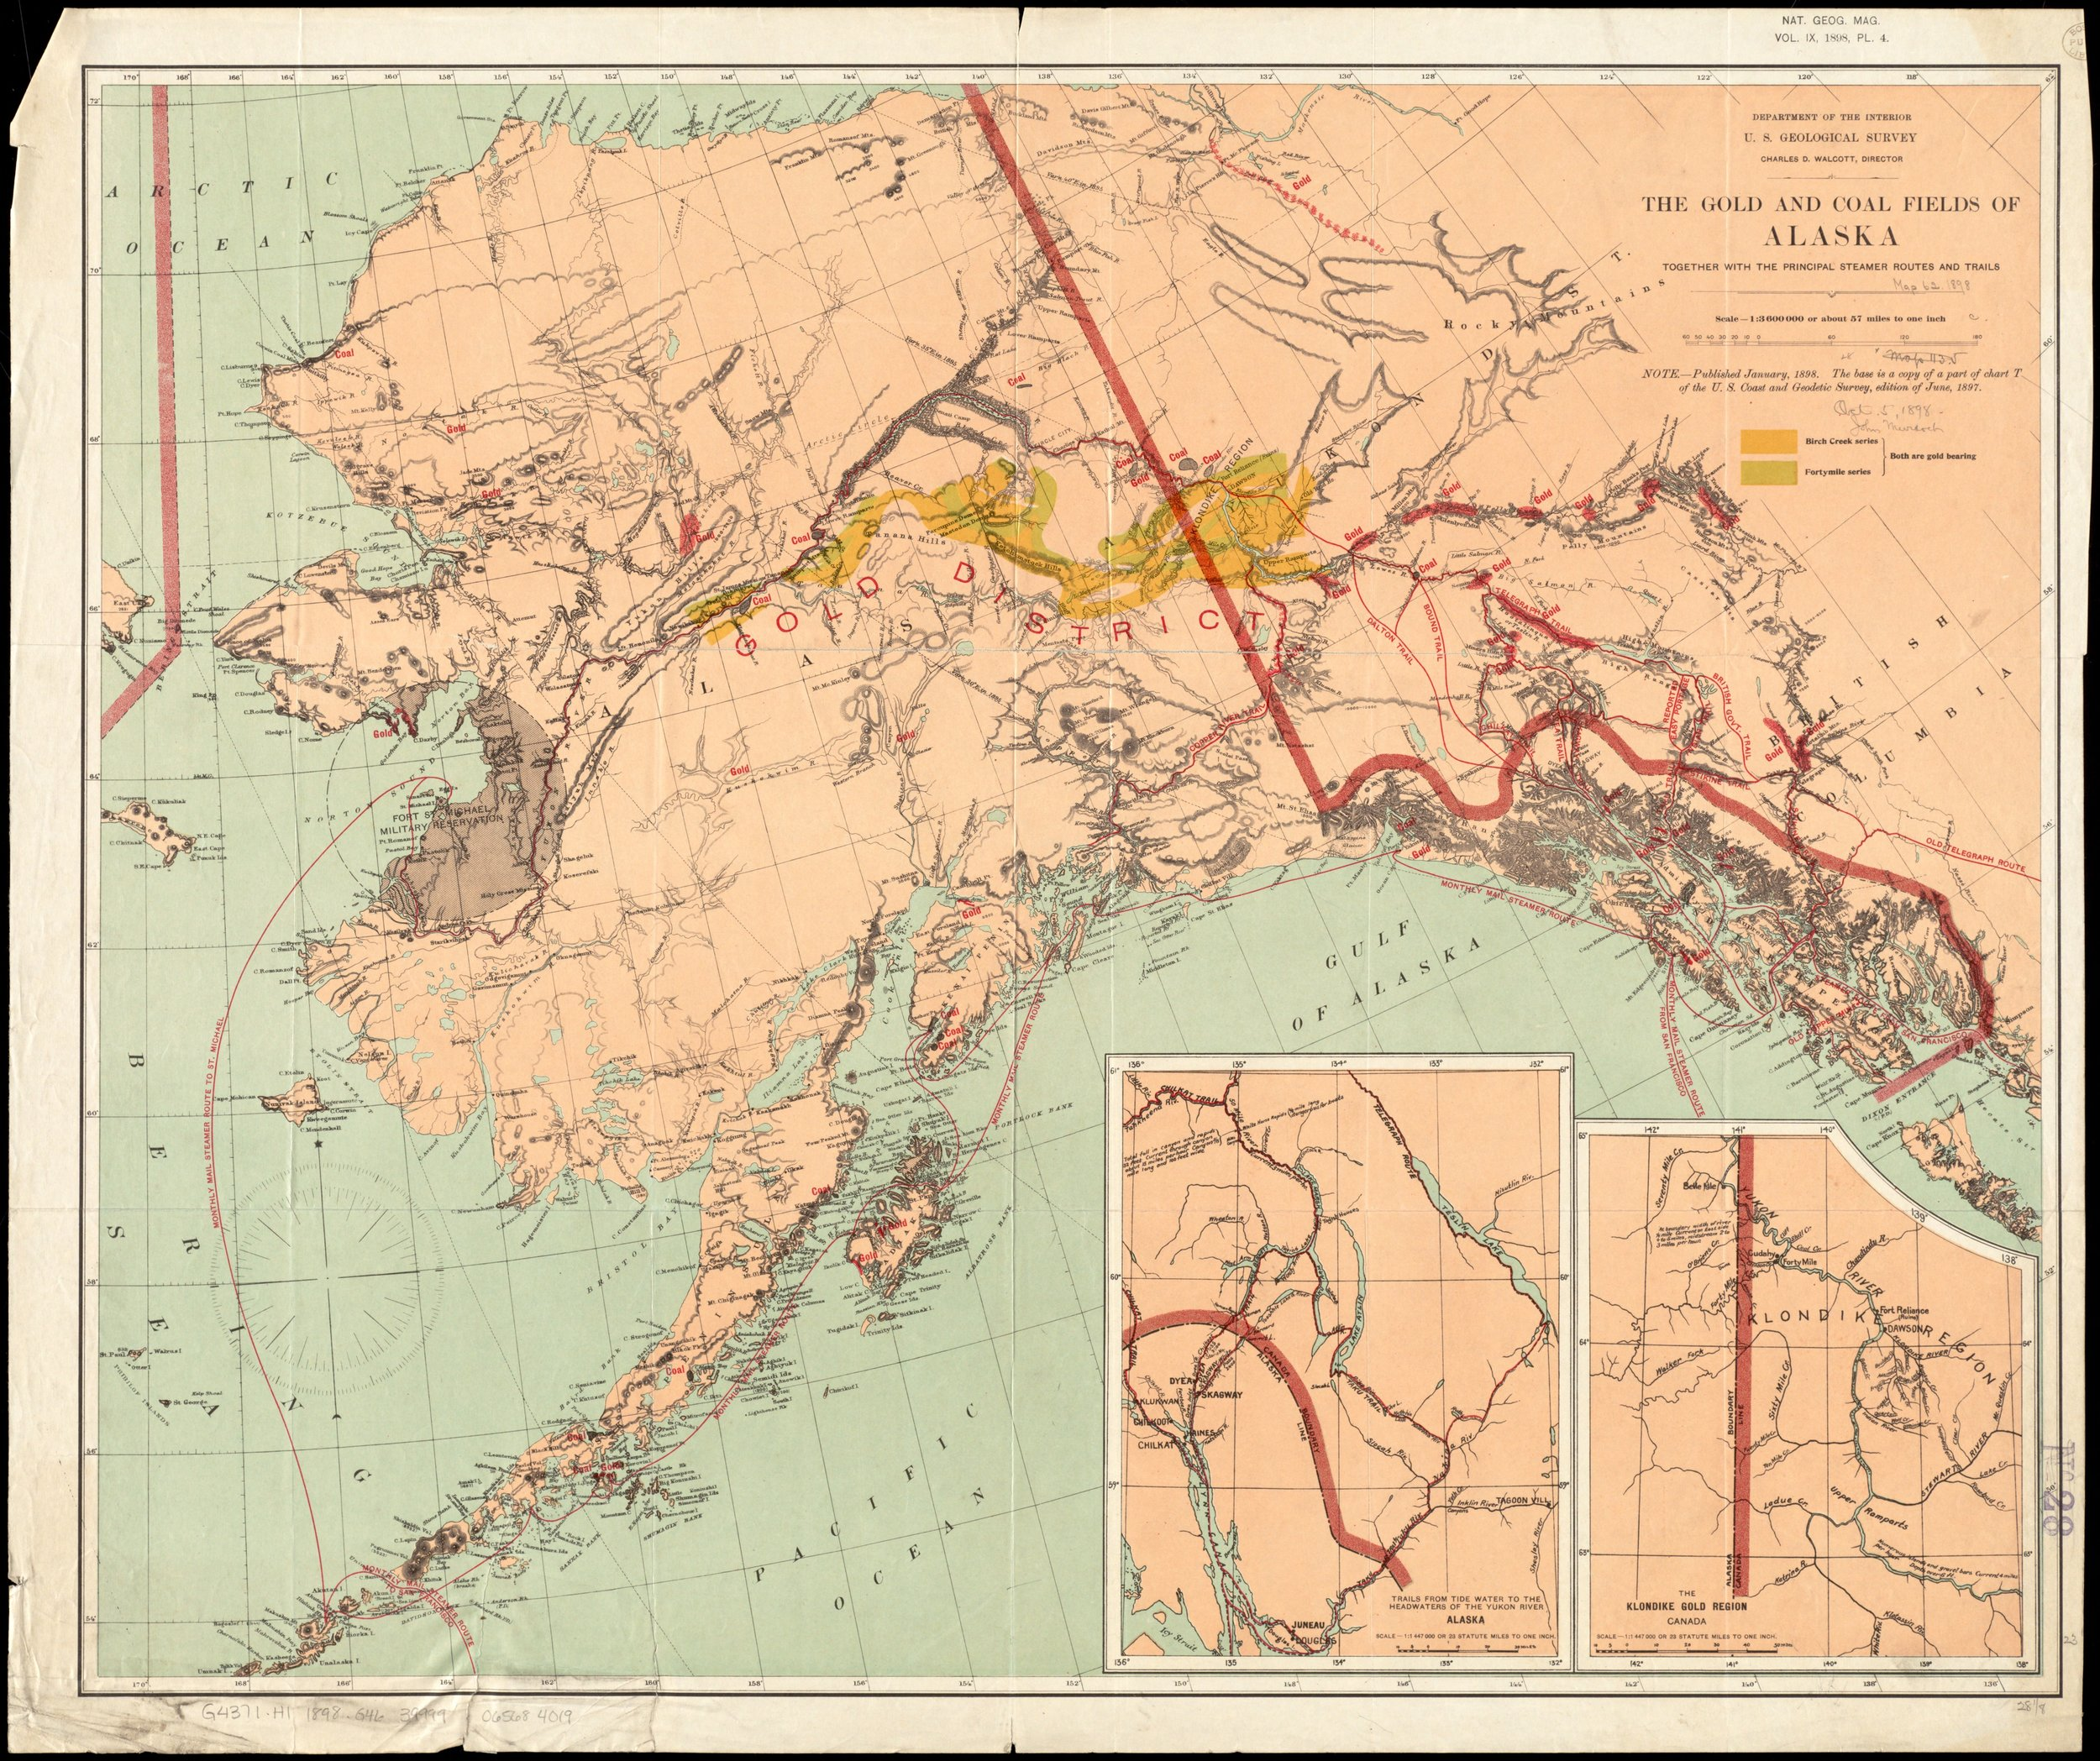 The gold and coal fields of Alaska : together with the principal steamer routes and trails